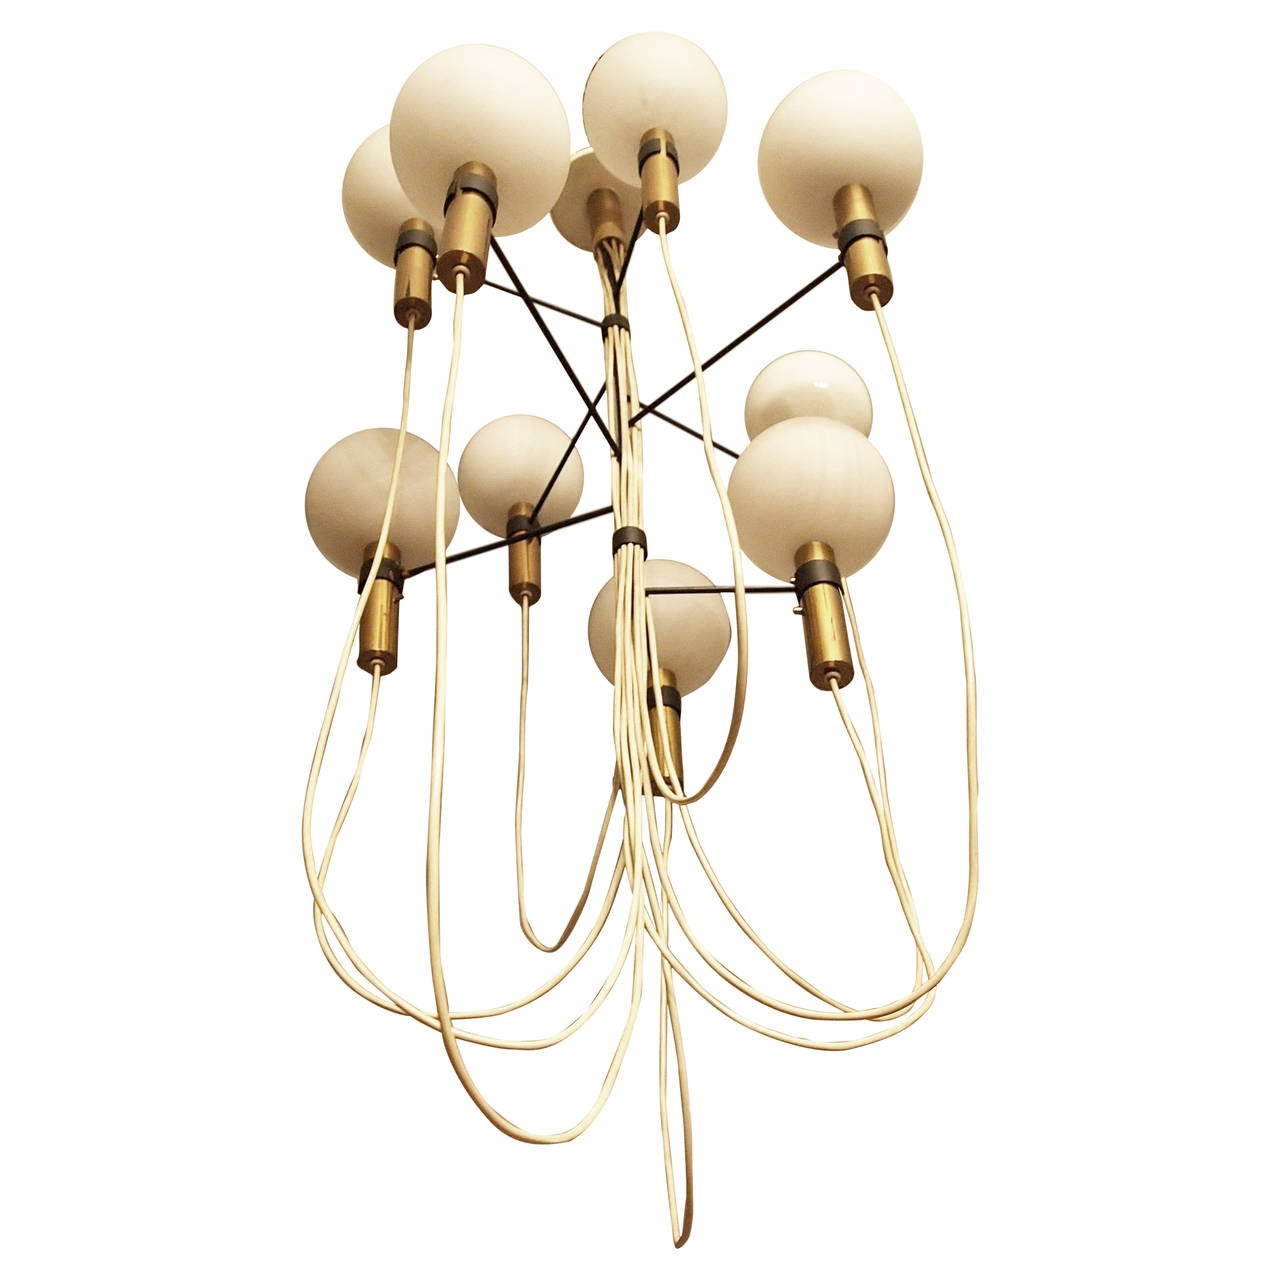 Chandelier Attributed to Gino Sarfatti, 1950s-1960s For Sale